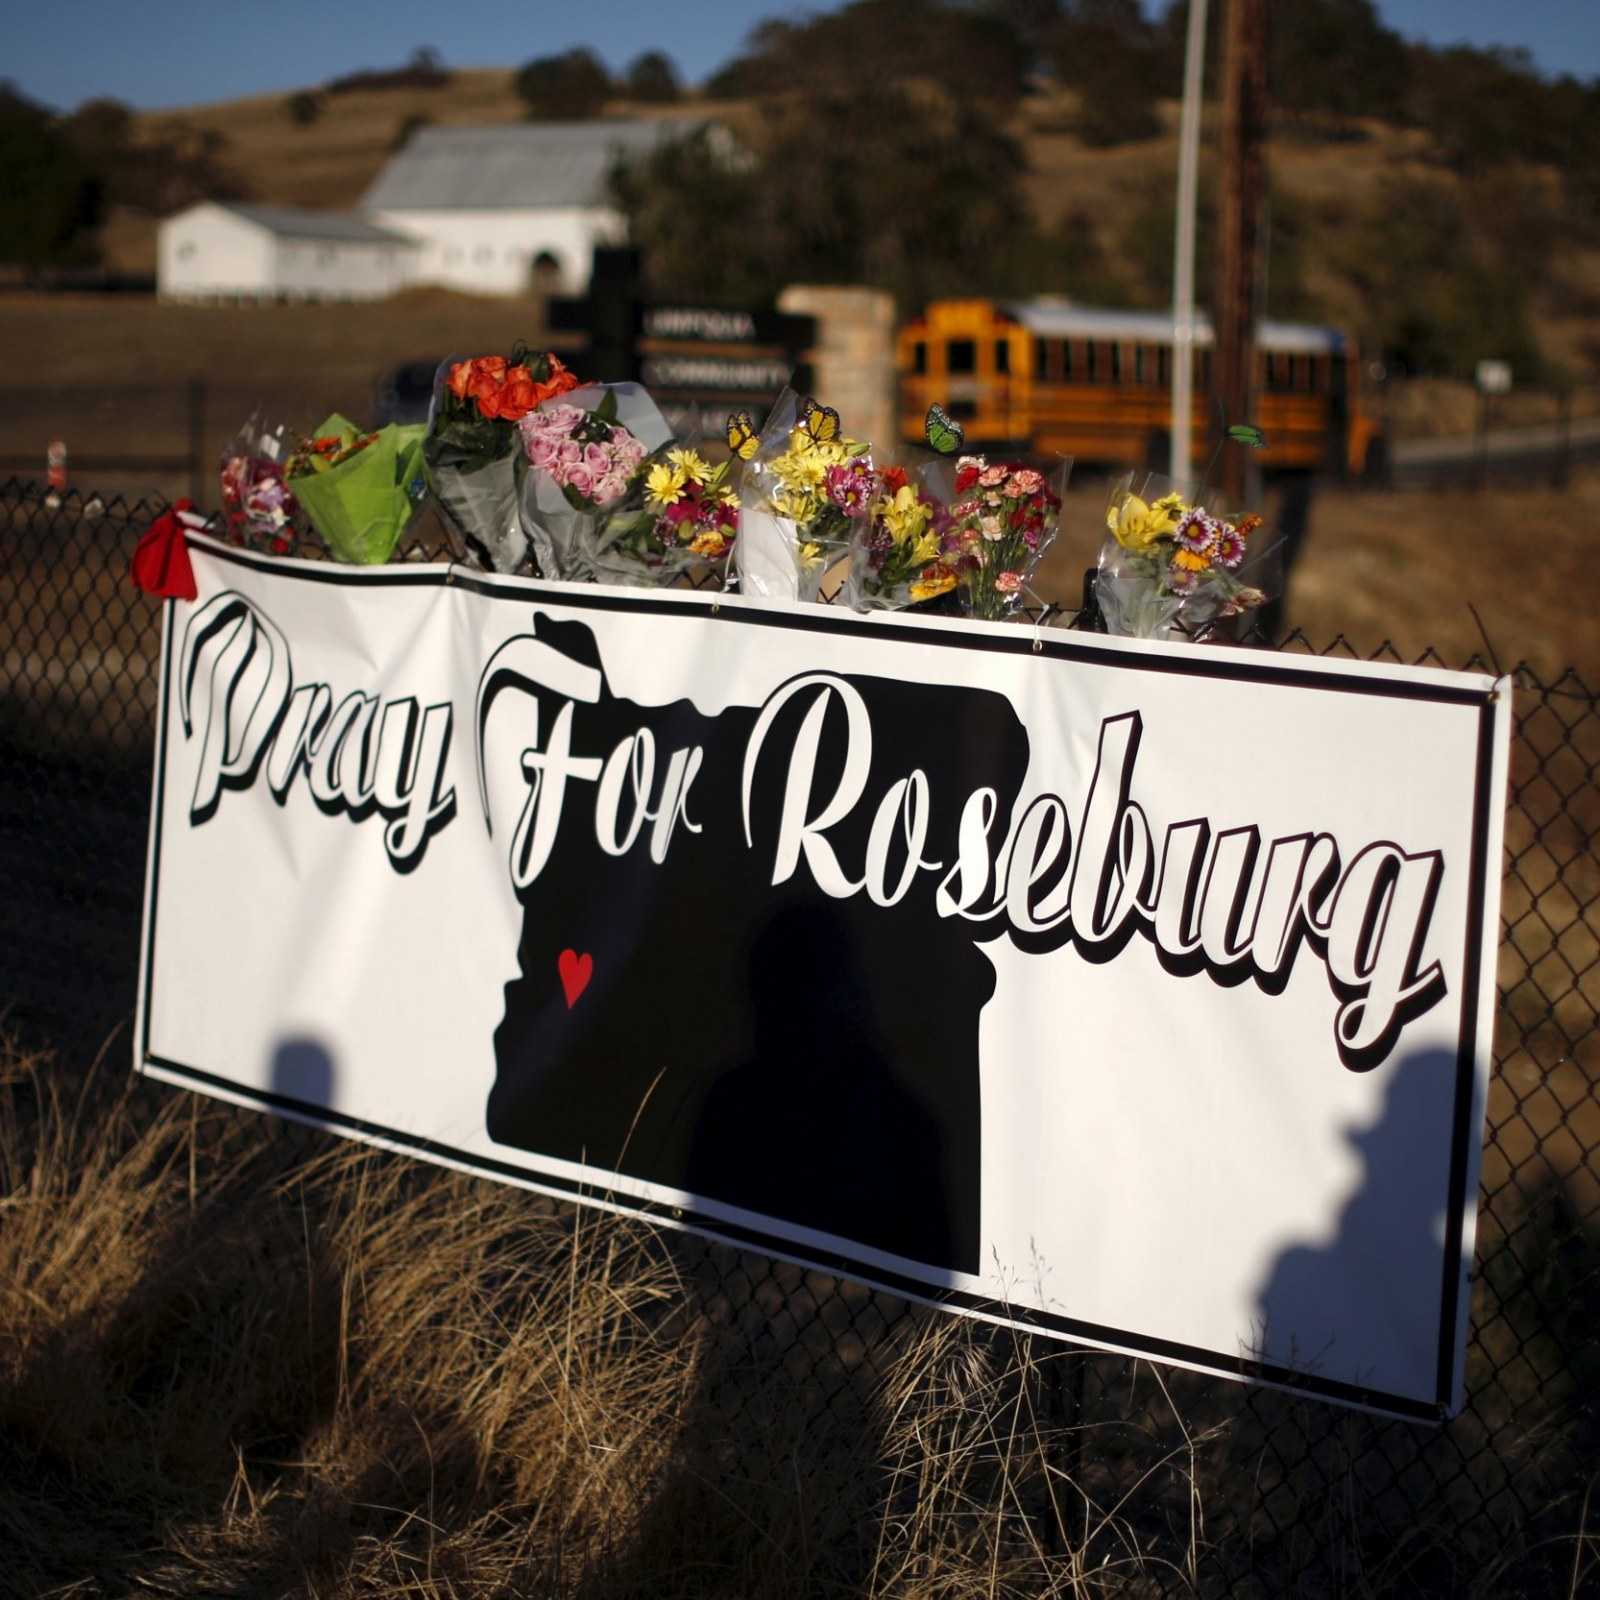 Detectives Who Engaged Oregon Shooter Identified